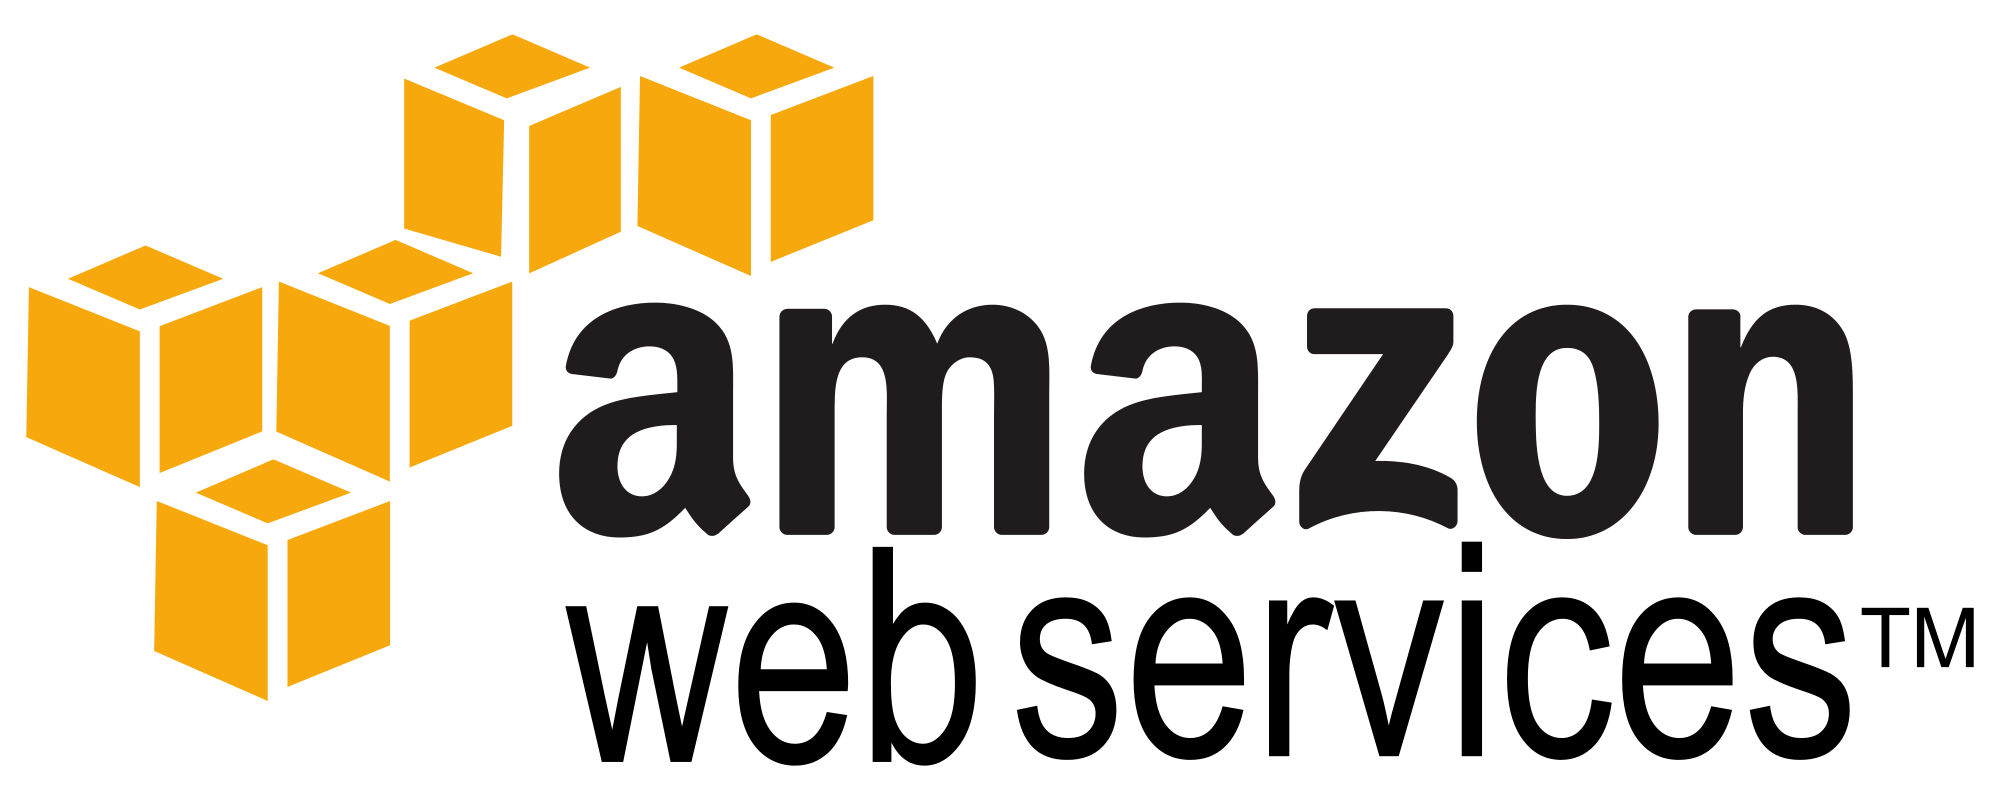 Working with AWS